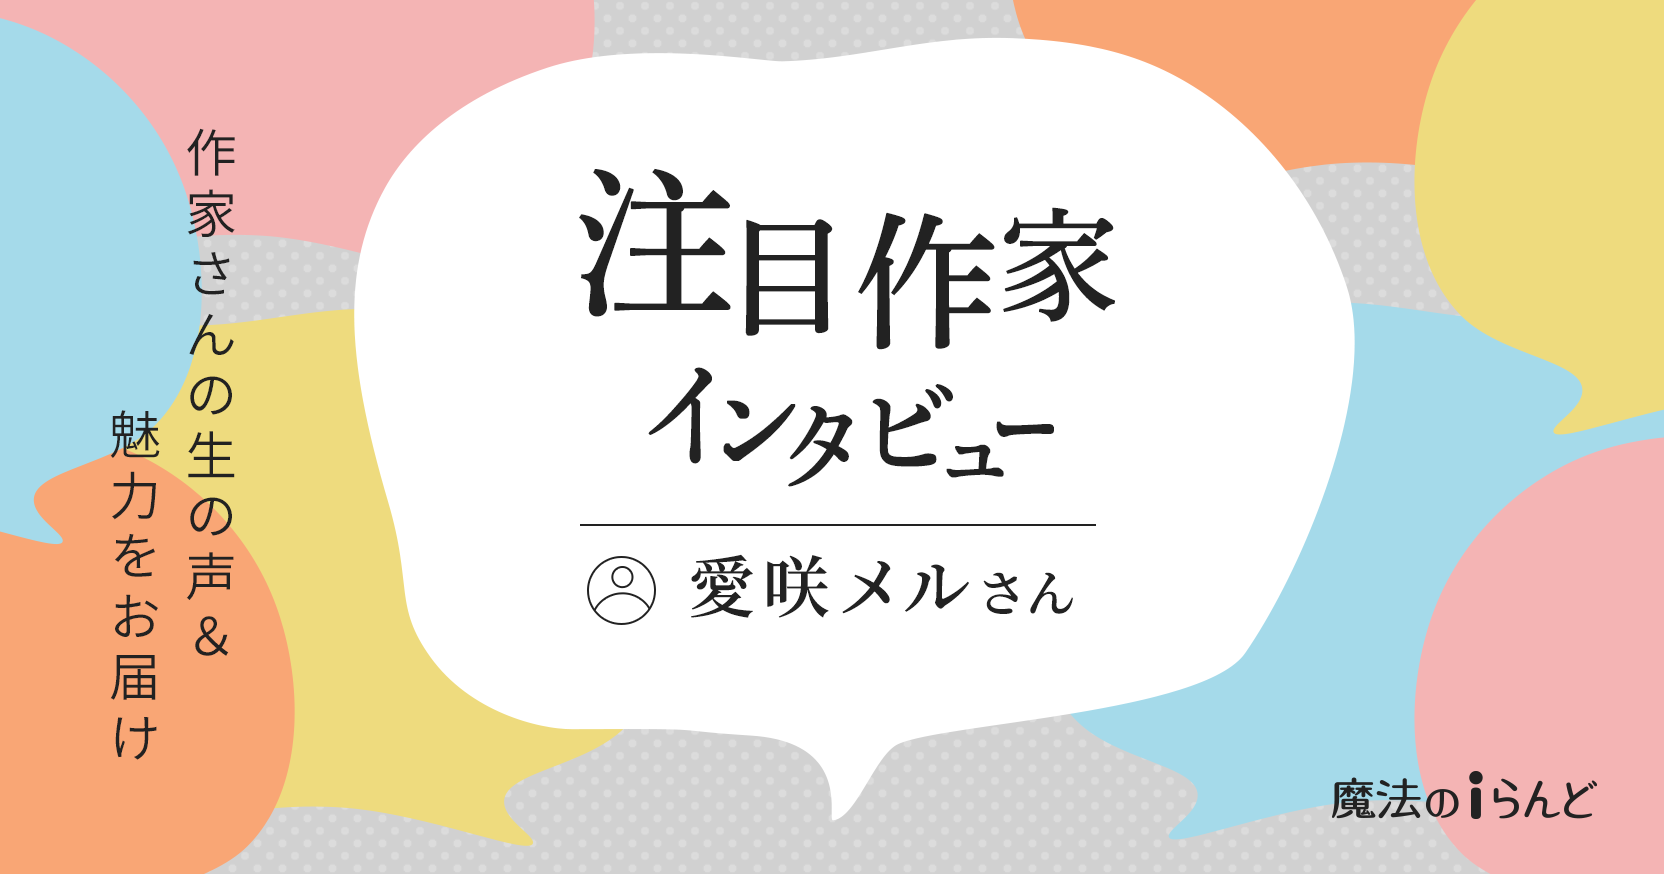 https://storage.googleapis.com/blog-info/entry/2020/05/interview_ogp_masaki%20meru0520.png